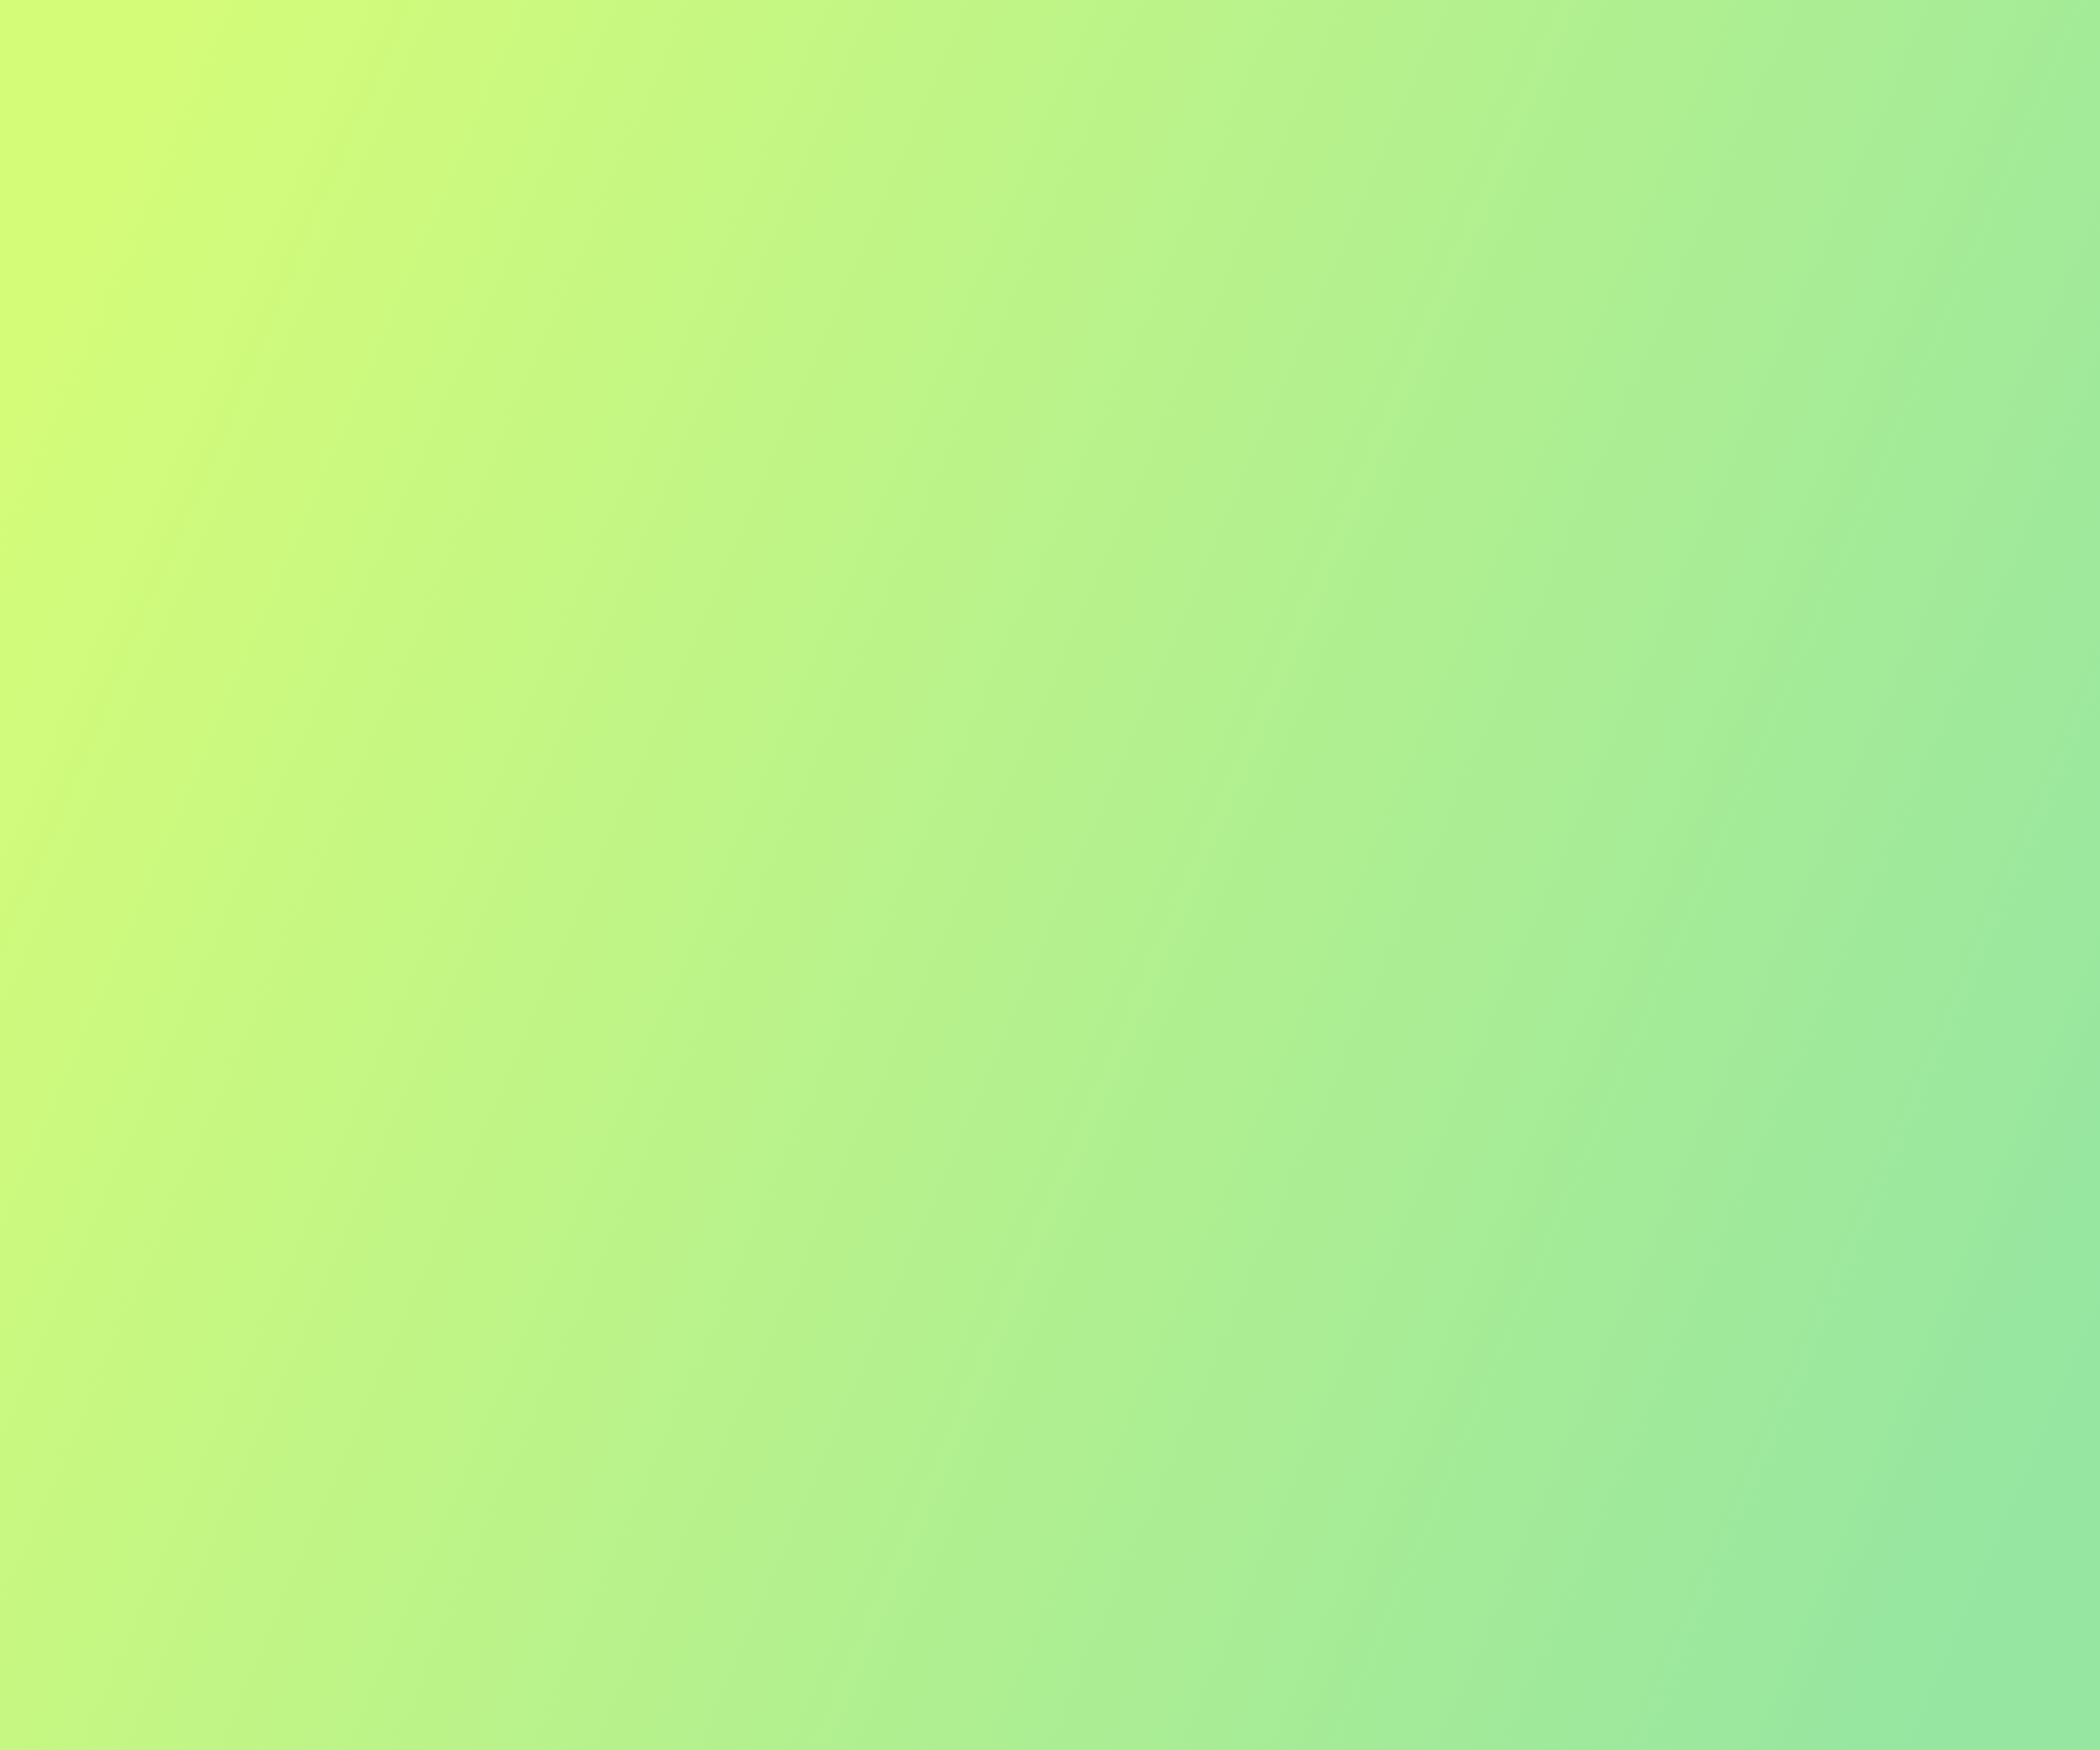 Fresh Background Gradients | WebGradients com 💎